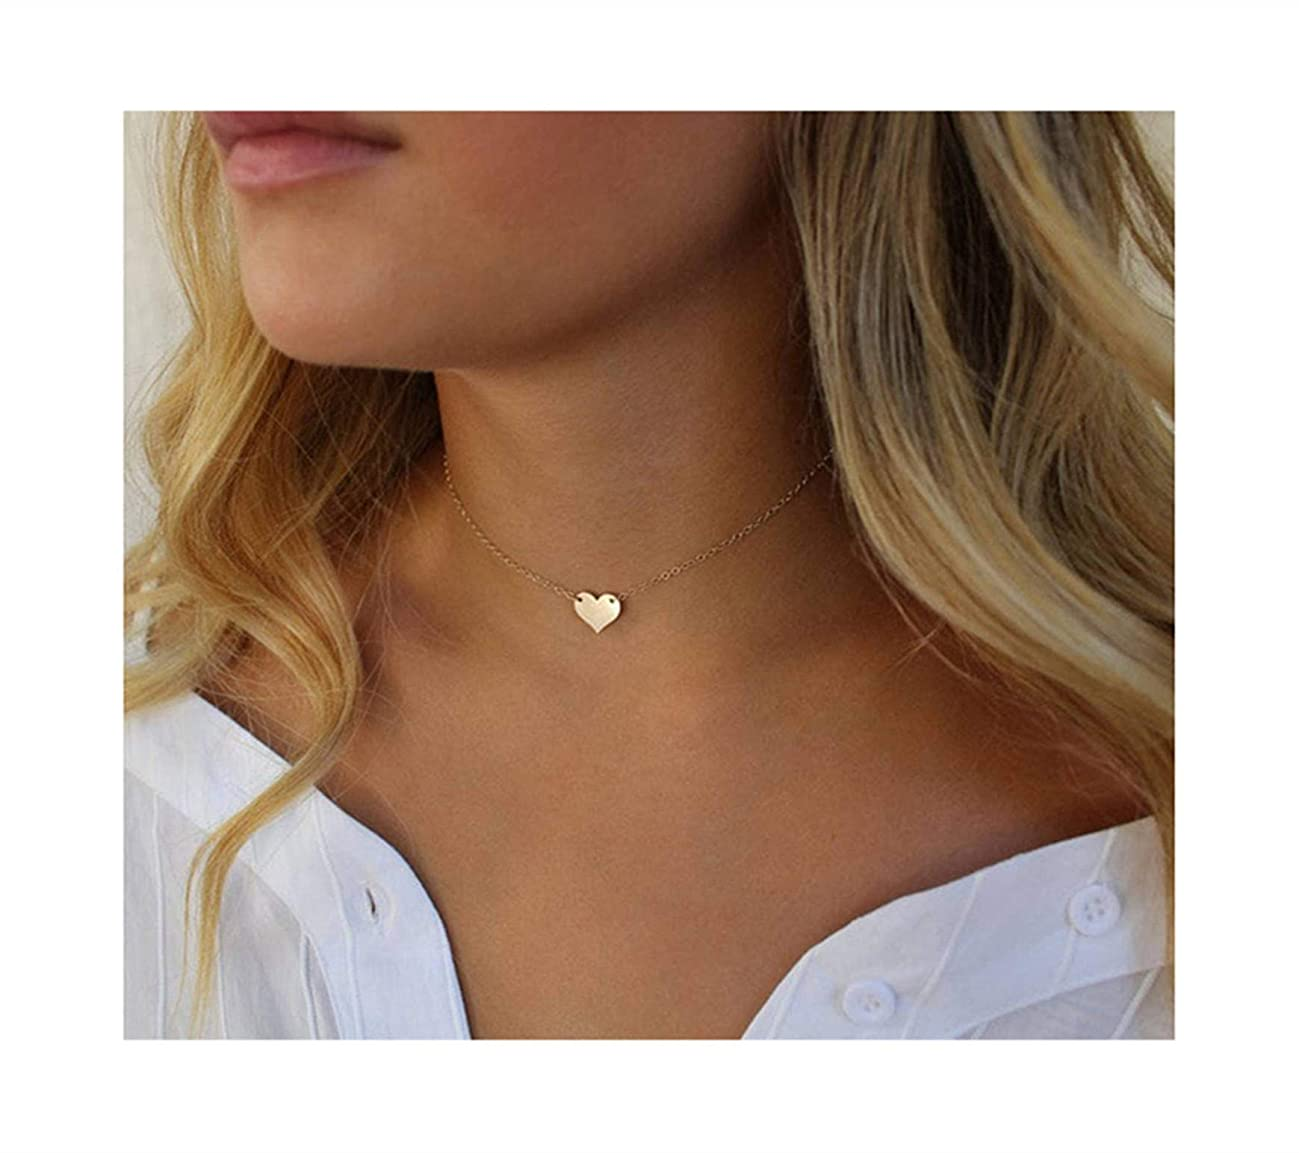 S.J JEWELRY Fremttly Womens Simple Delicate Handmade 14K Gold Filled/Rose Gold/Silver Simple Delicate Heart and Bar Chokers Necklace